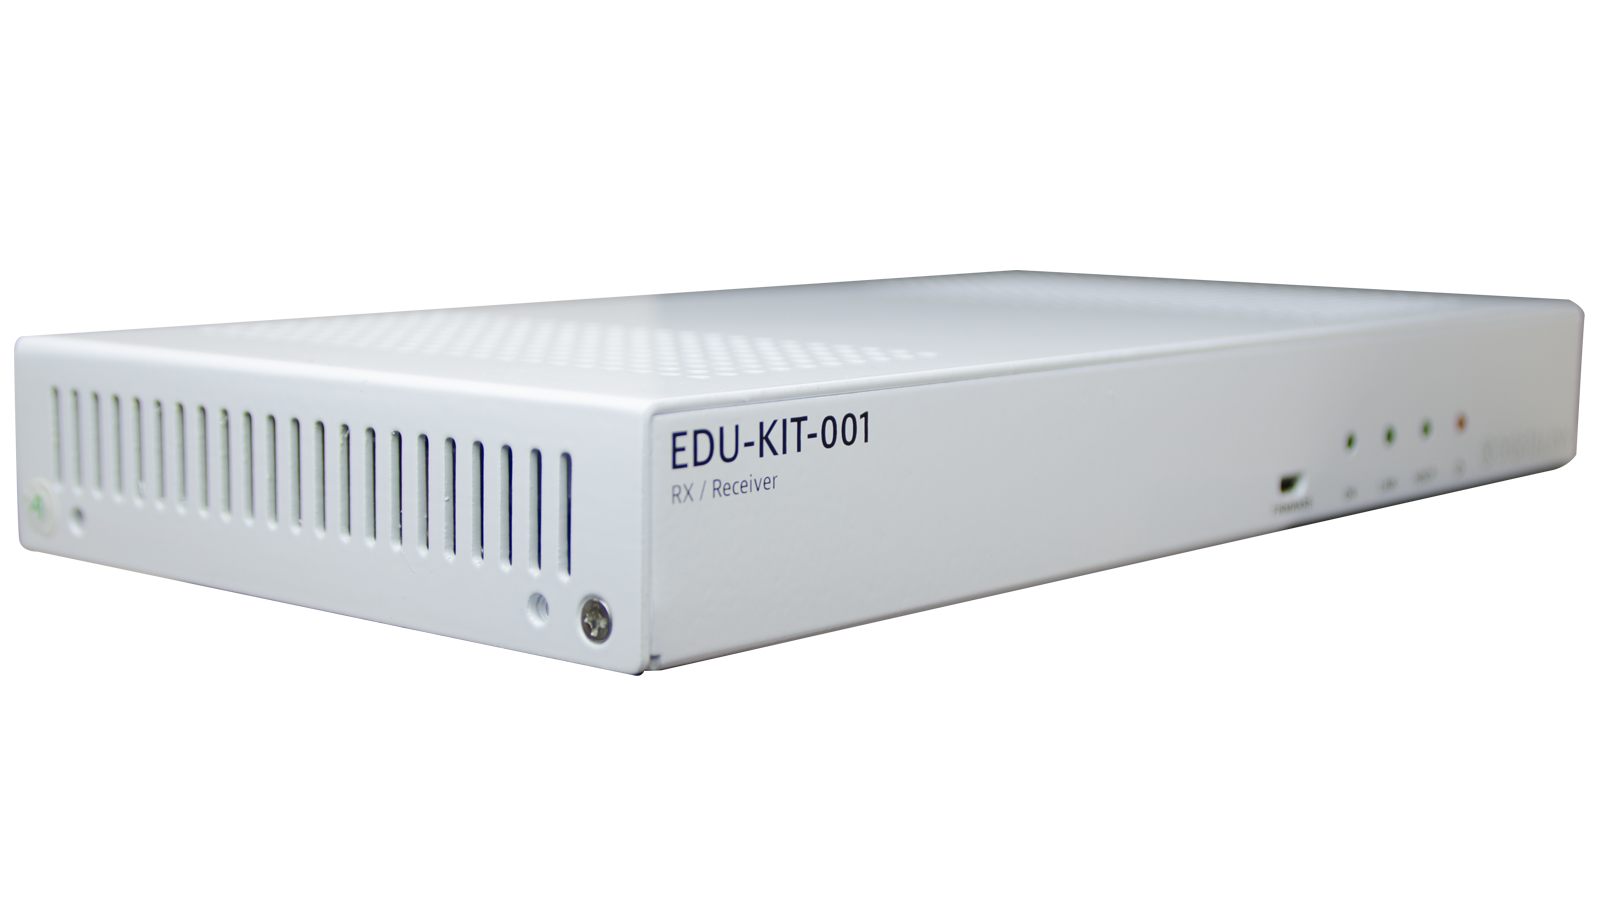 Edu Kit 001 Hdmi Av Distribution And Control System Project 3a 8211 60 100w Hi Fi Power Amplifier